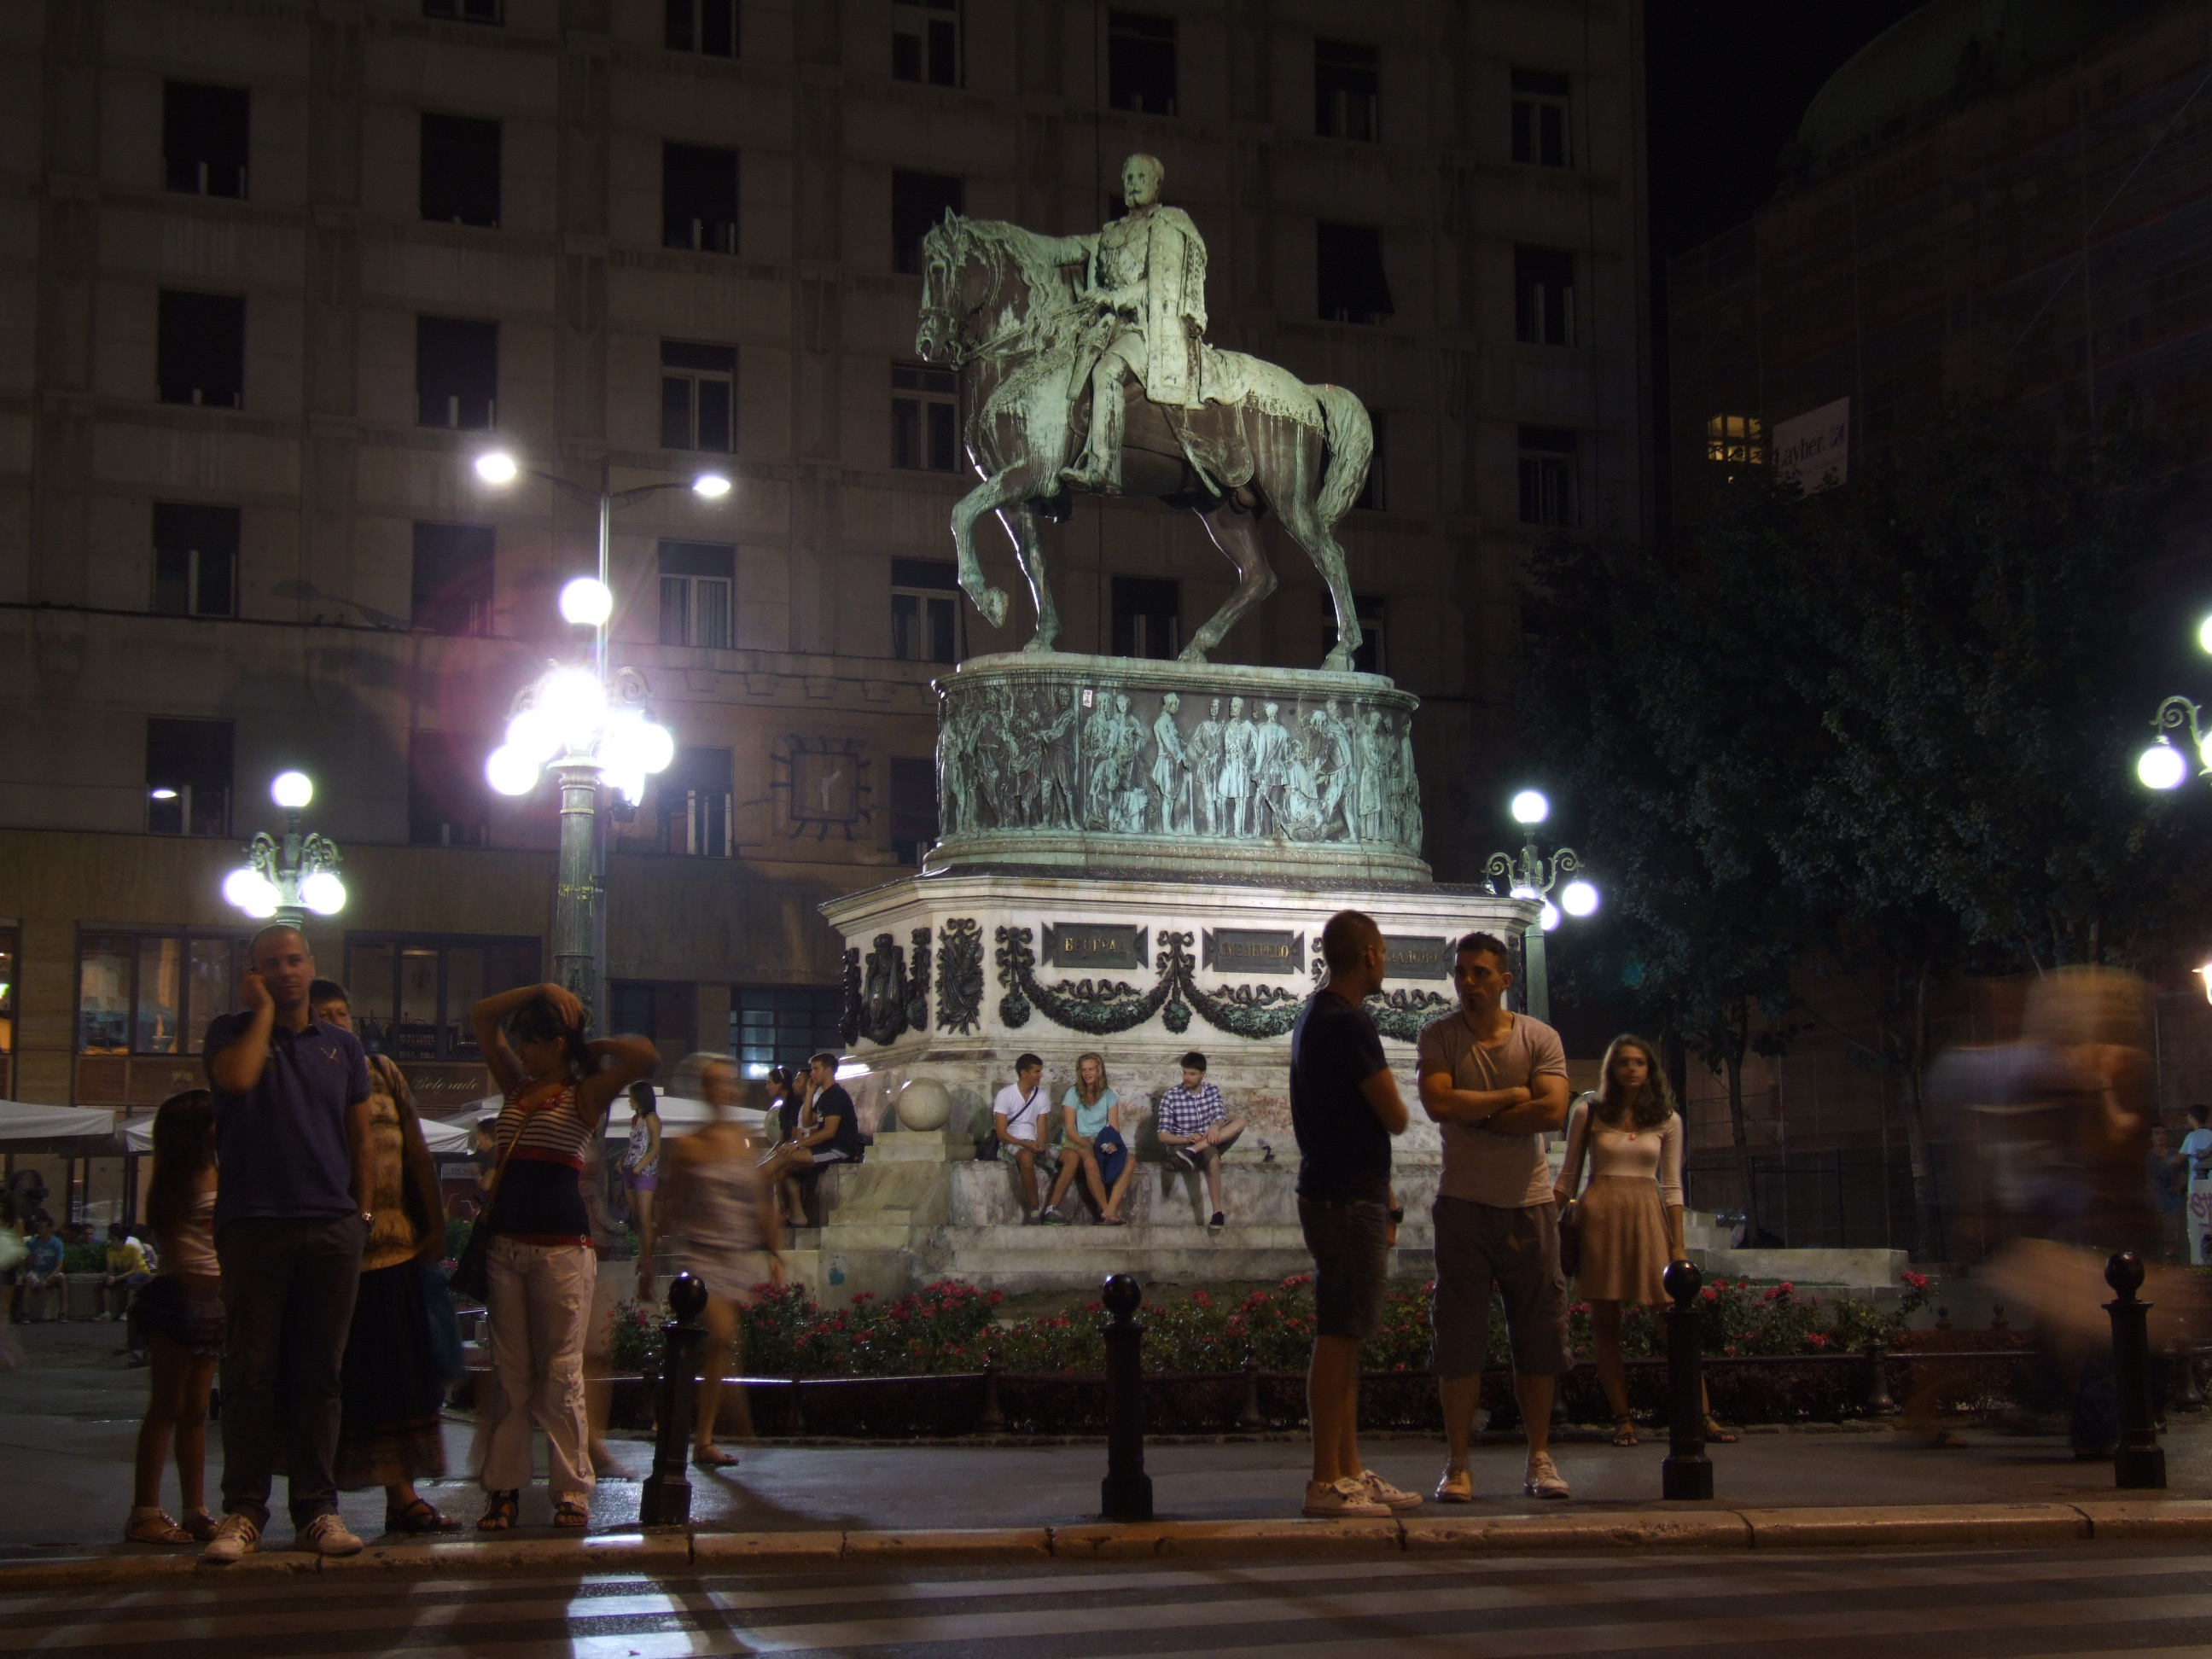 https://commons.wikimedia.org/wiki/File:Prince_Mihailo_Monument,_Belgrade_-_by_night.JPG